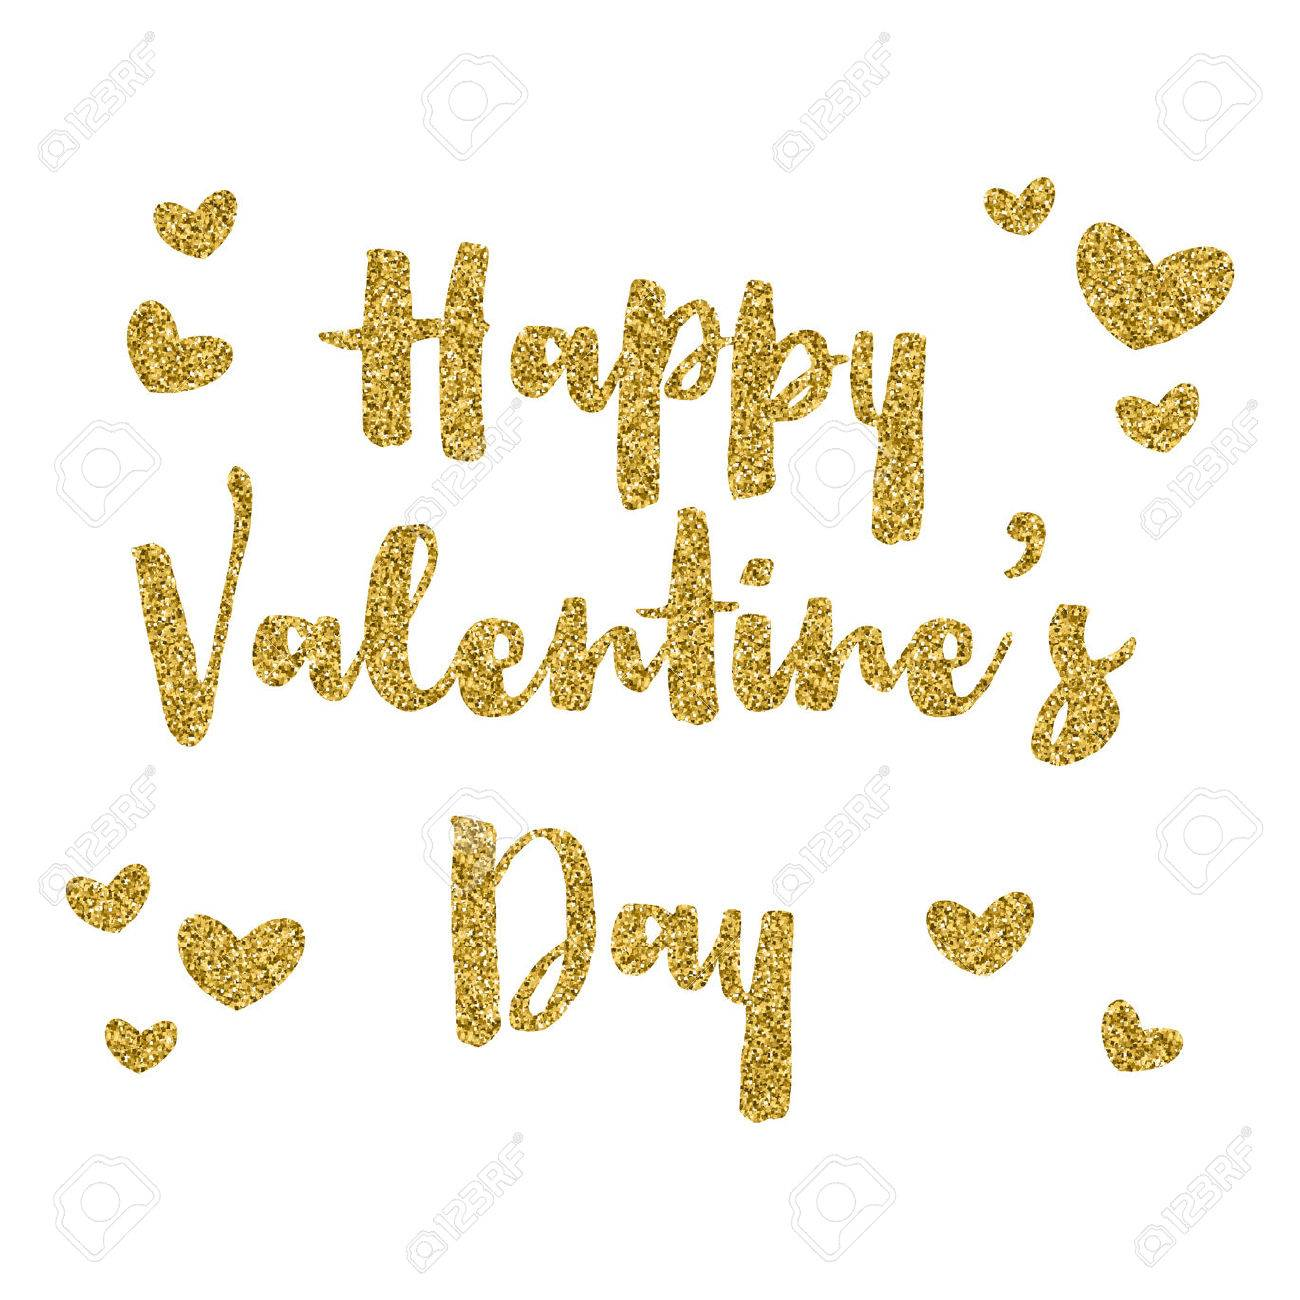 d8dbf4b44906 Happy Valentine's Day background with gold glitter text Stock Photo -  50820253